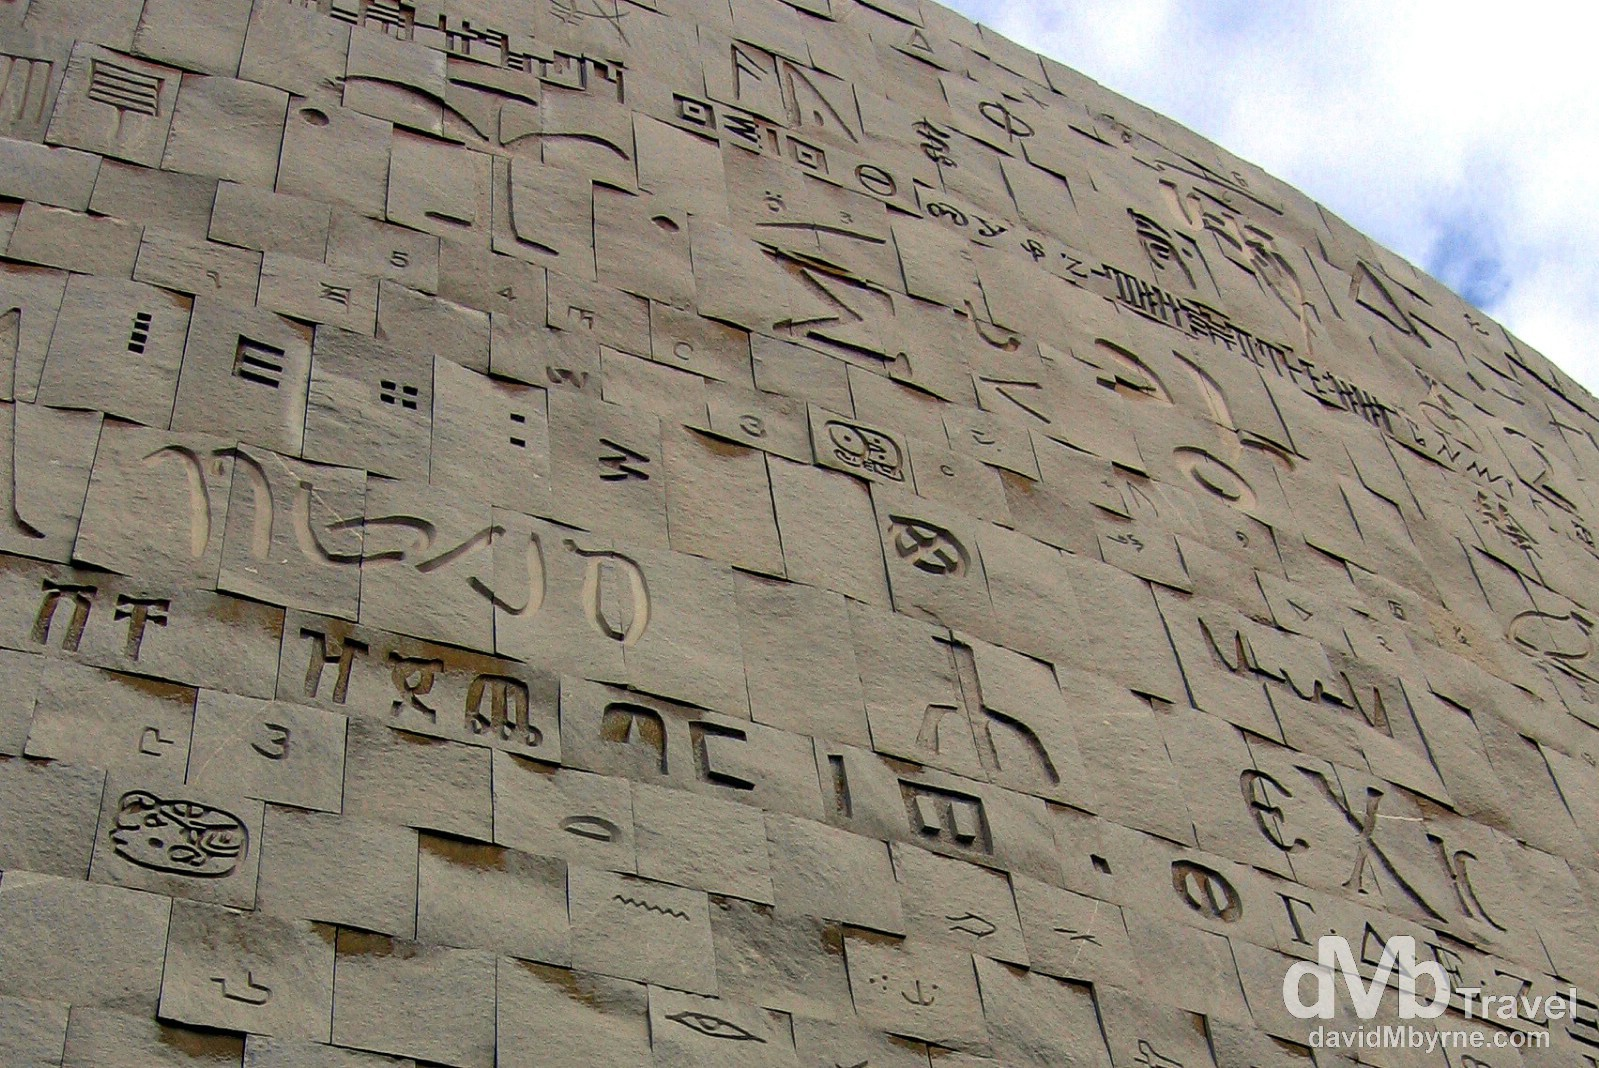 Giant letters, pictograms, hieroglyphs and symbols from every known alphabet on the outer walls of the Bibliotheca Alexandrina, Alexandria, Egypt. April 16, 2008.